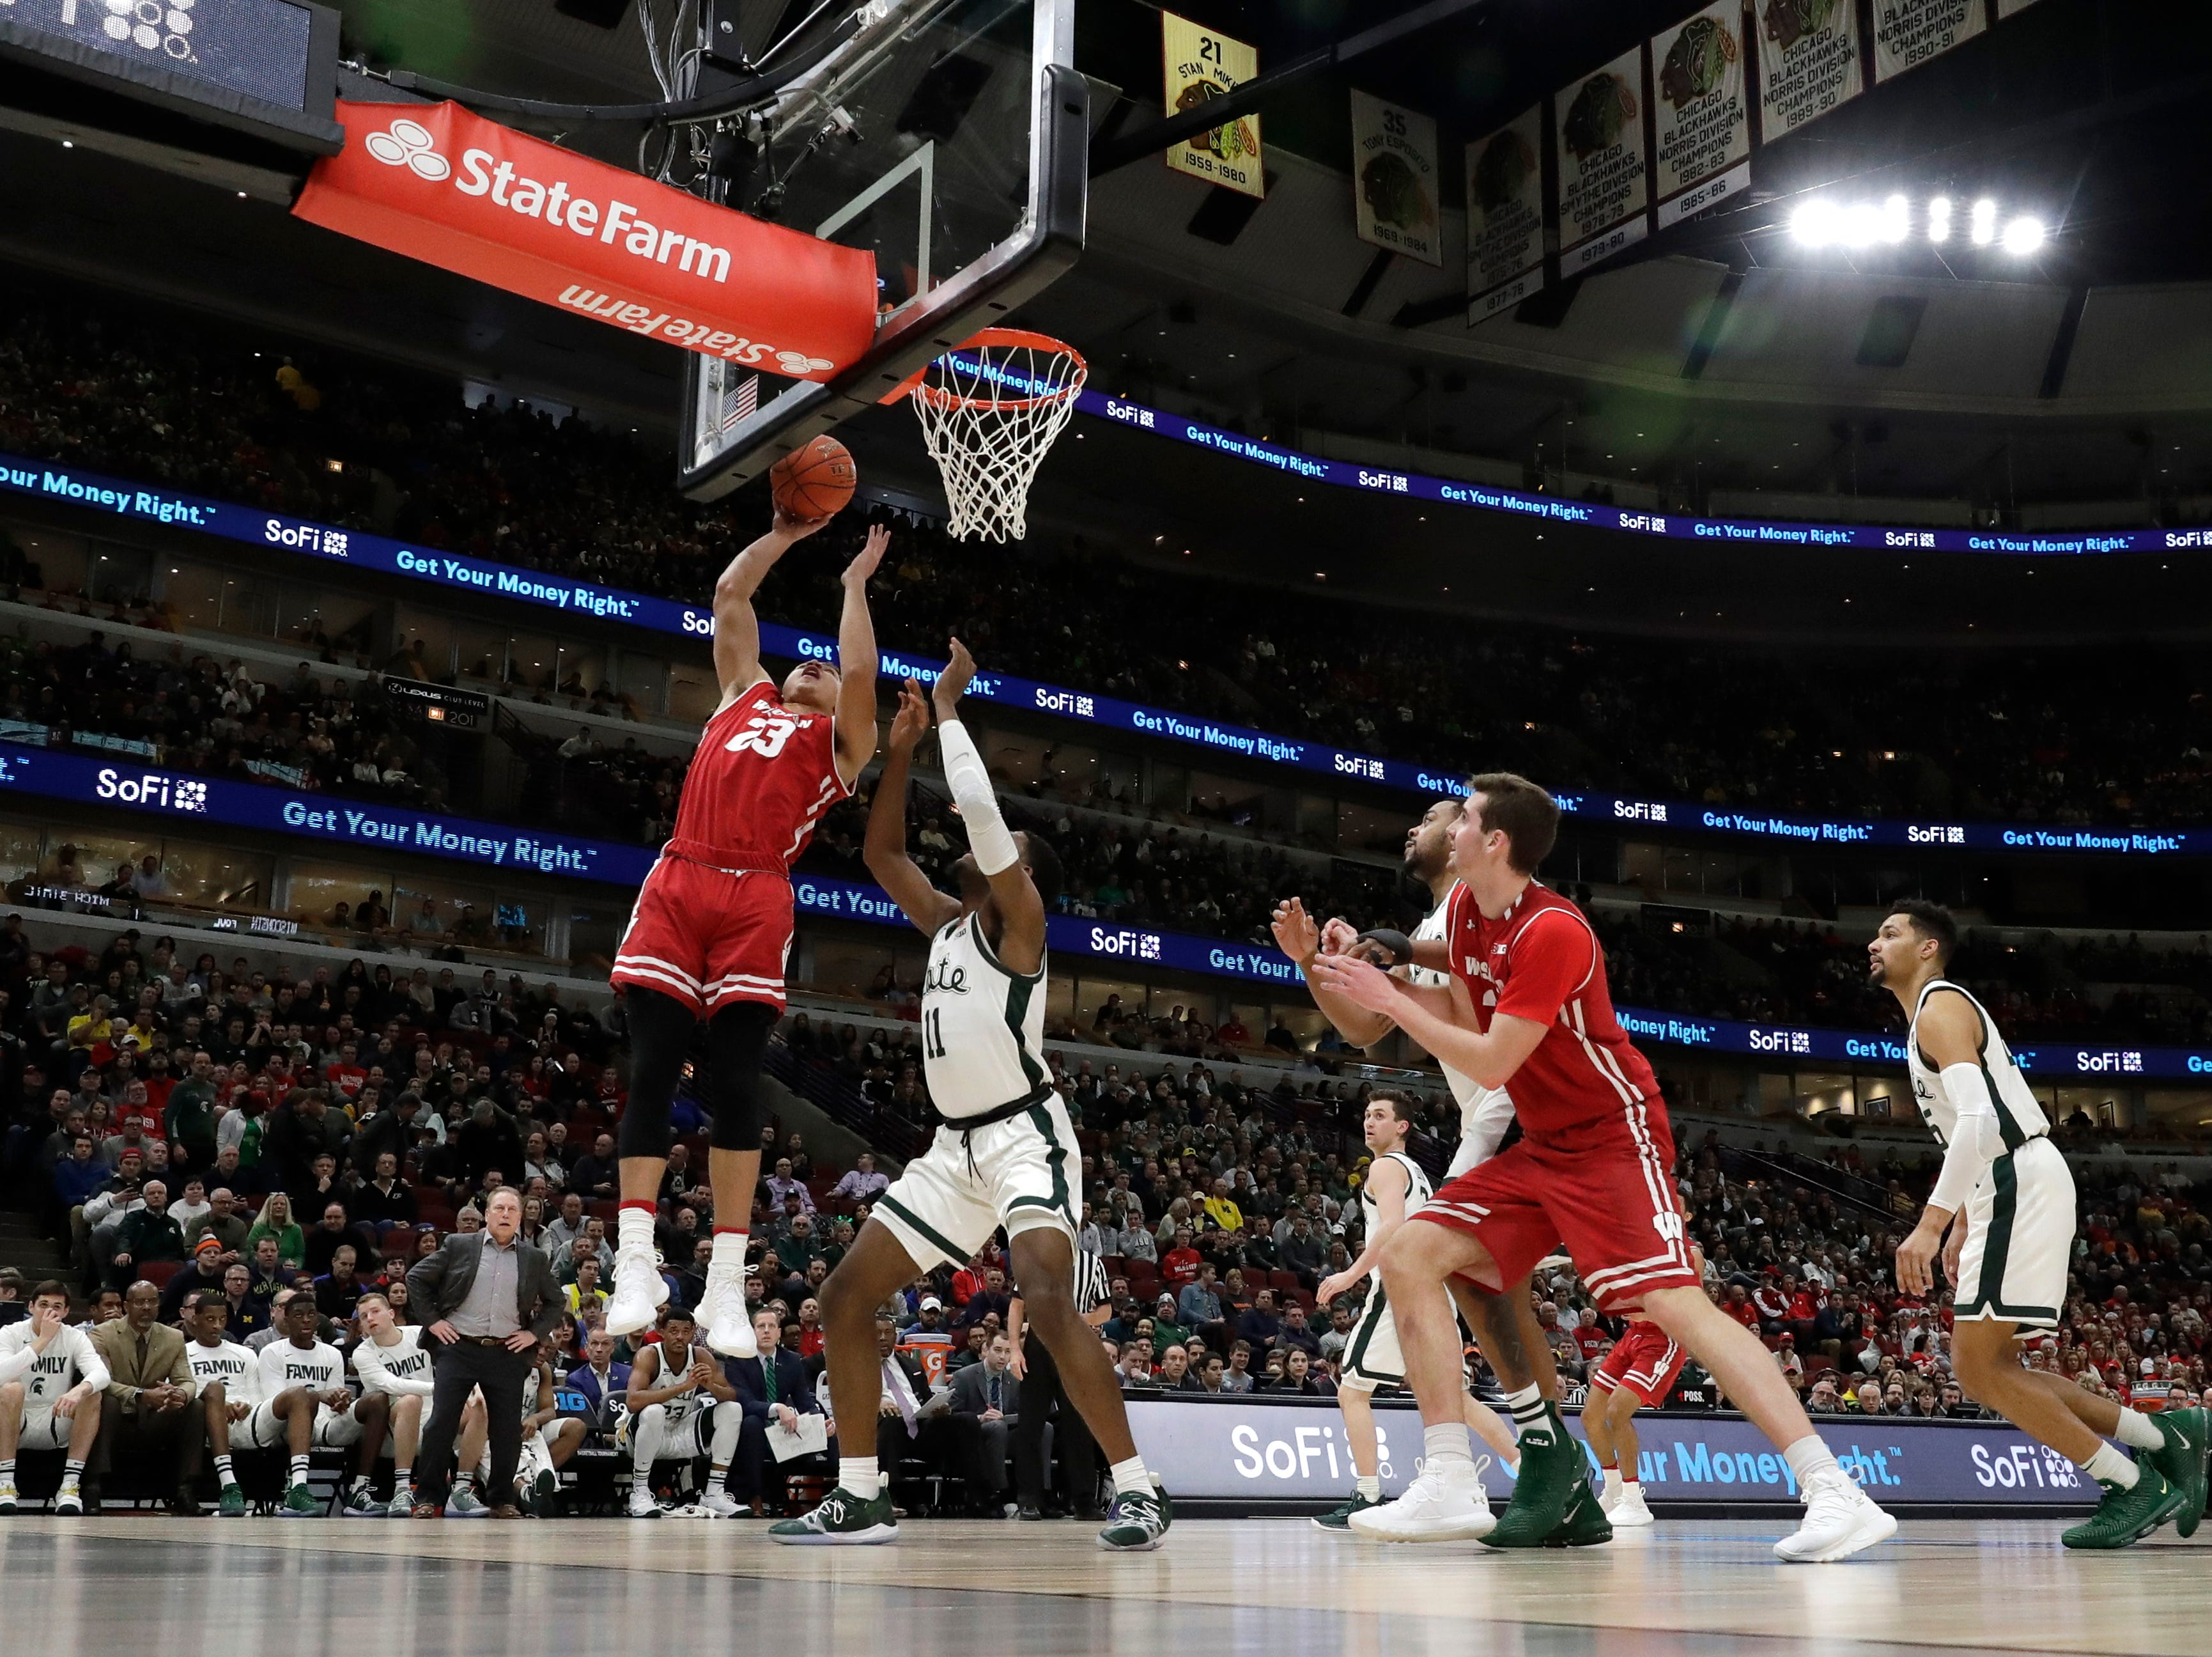 Wisconsin's Kobe King (23) shoot over Michigan State's Aaron Henry (11) during the first half of an NCAA college basketball game in the semifinals of the Big Ten Conference tournament, Saturday, March 16, 2019, in Chicago.